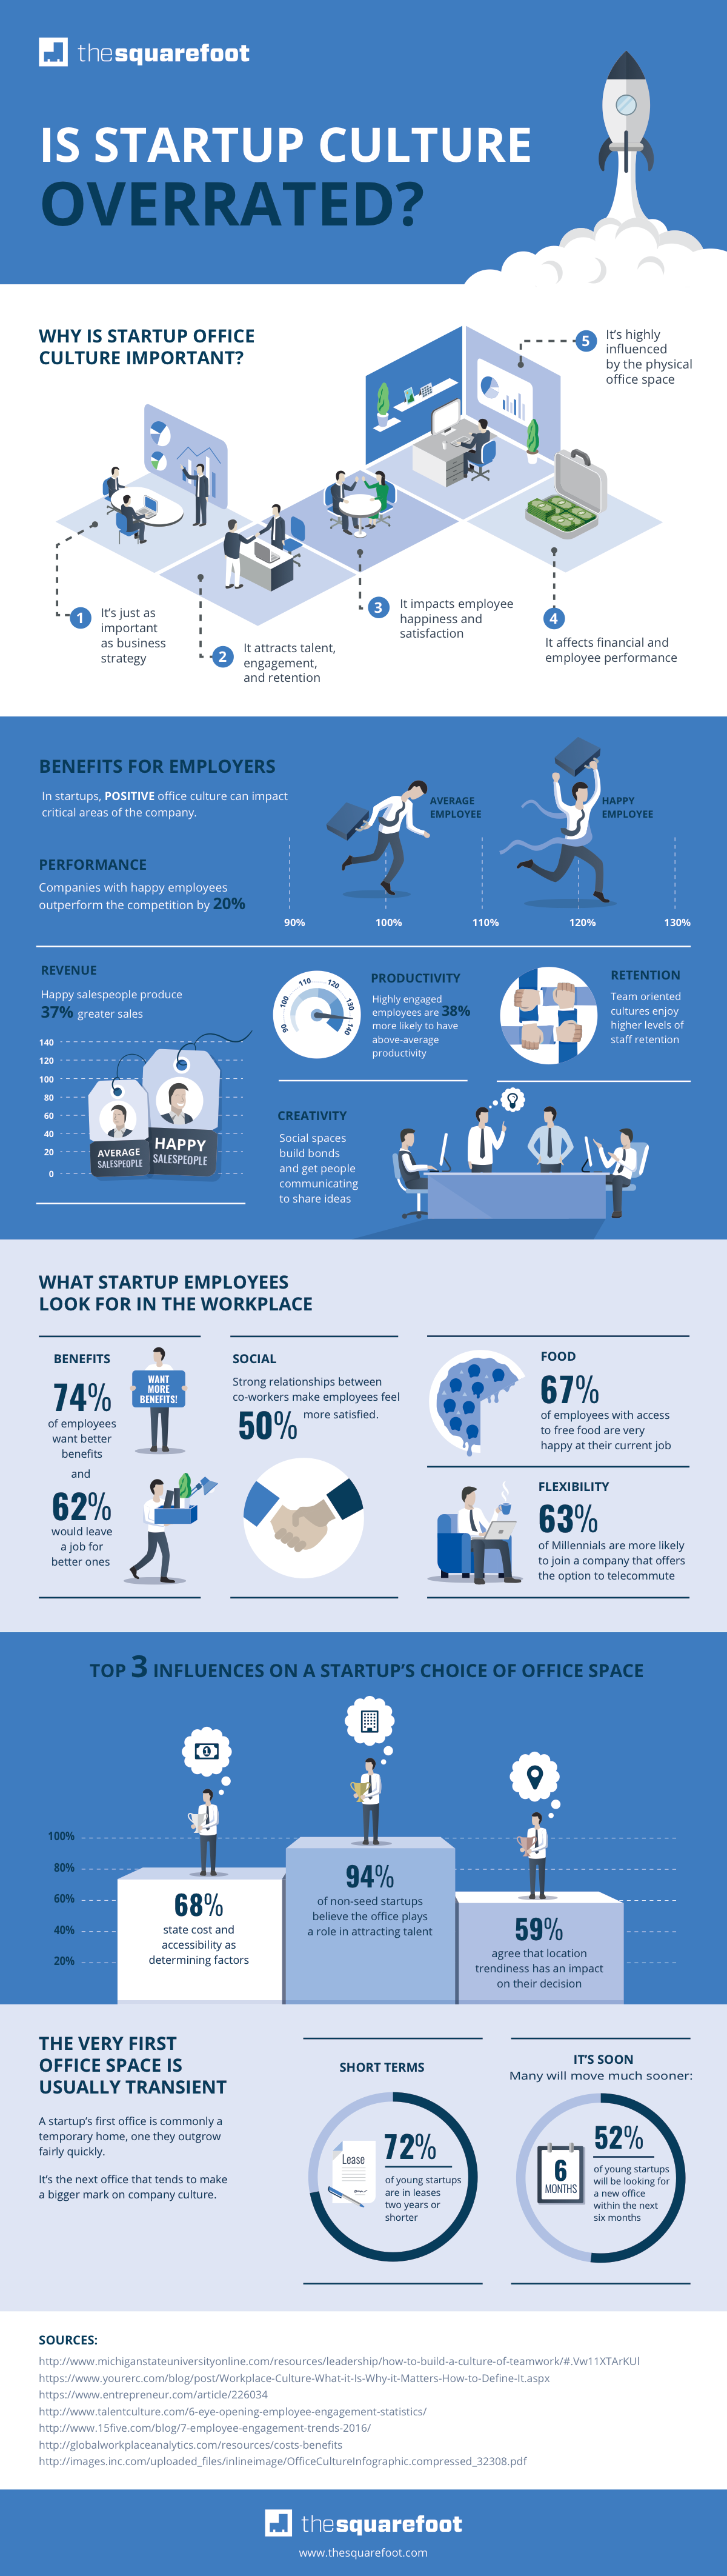 TheSquareFoot Startup Work Culture Infographic